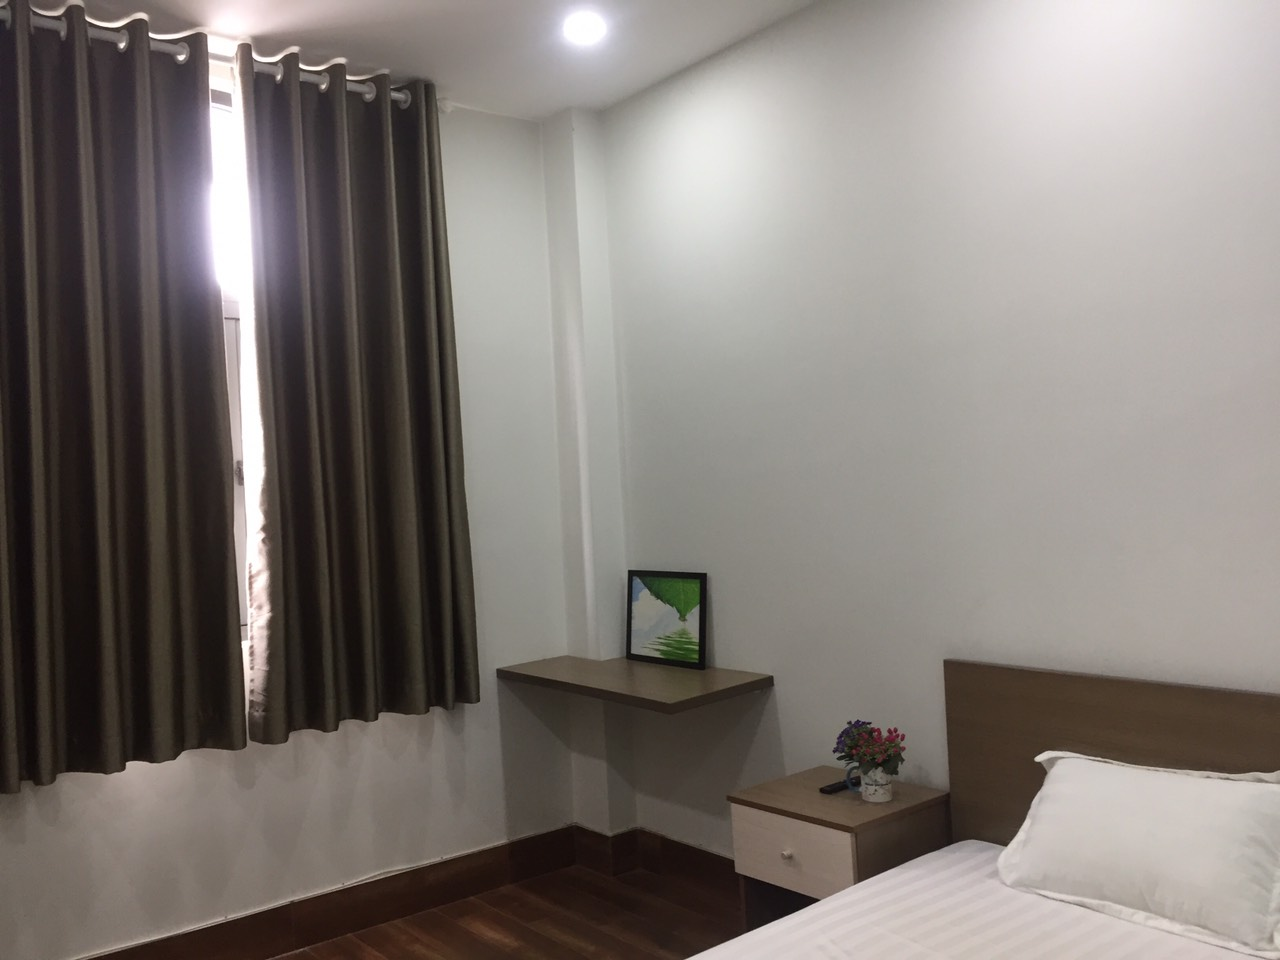 serviced apartment for rent in binh thanh district hcmc serviced apartment for rent in binh thanh district hcmc BT99138 (3)